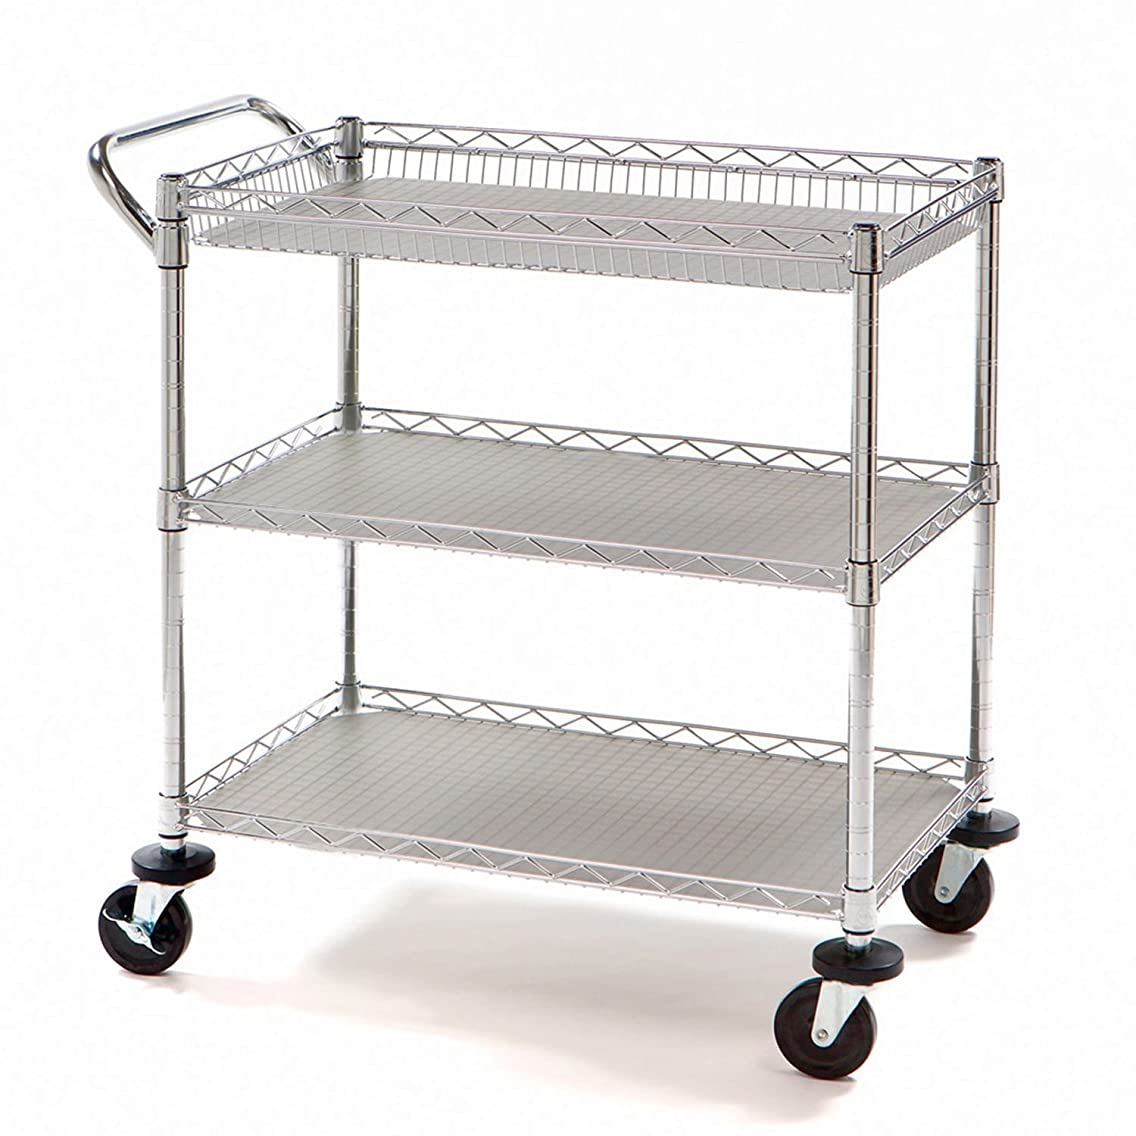 Member's Mark Commercial Utility Cart - 2 Piece